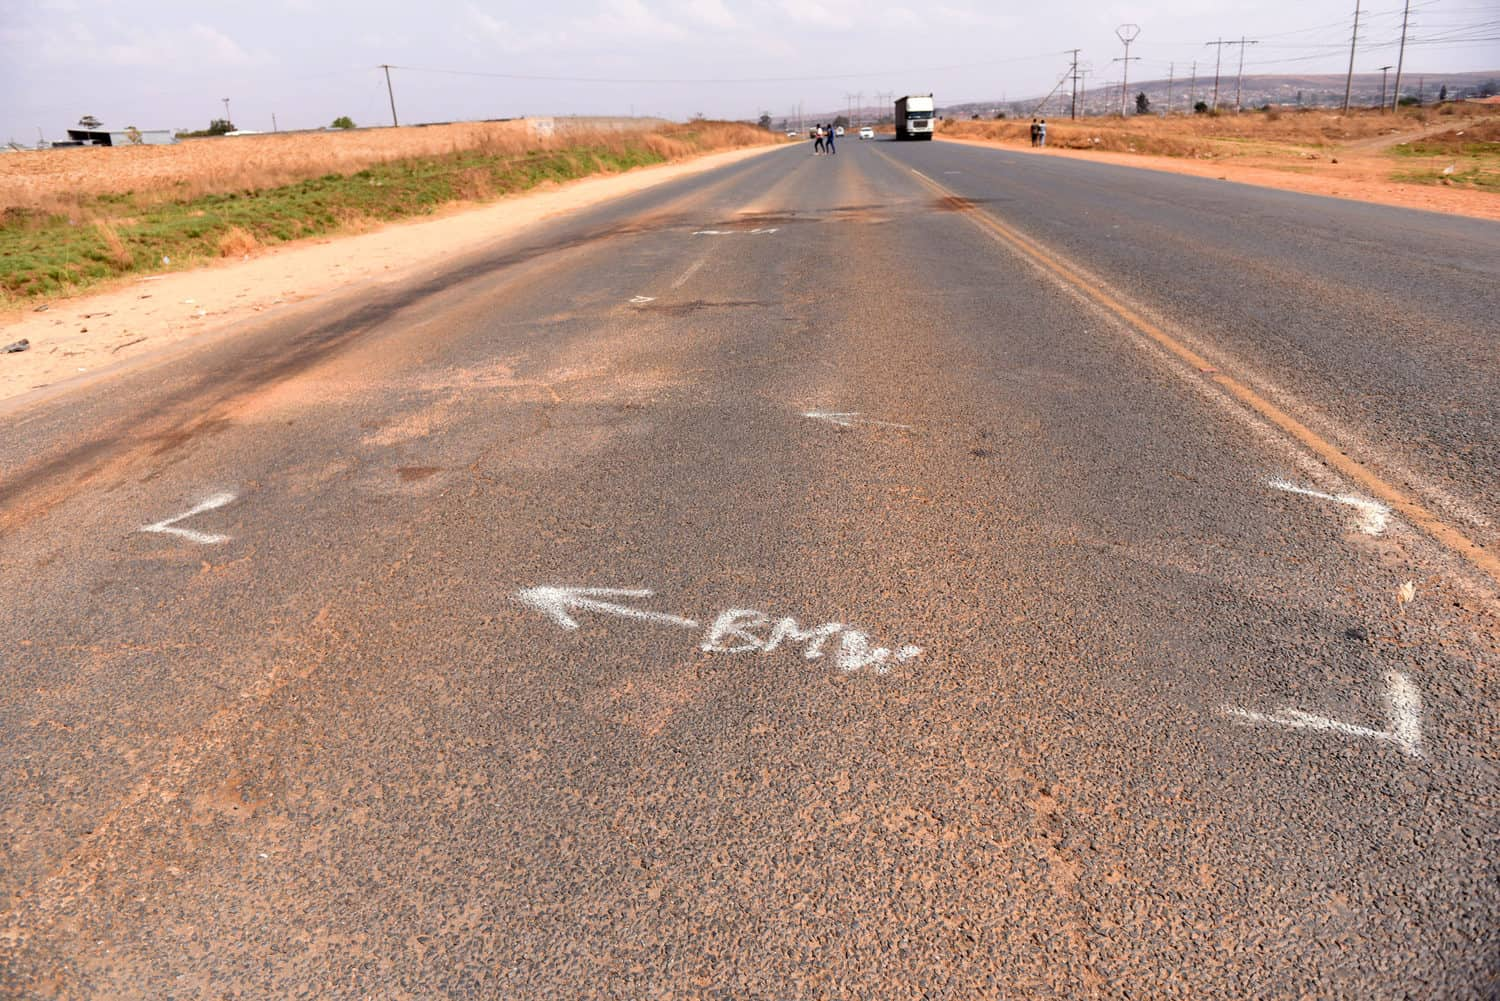 The spot where Late Johannesburg mayor, Jolidee Matongo's vehicle collided with a van while trying to avoid a pedestrian along Golden Highway near Vlakfontein.